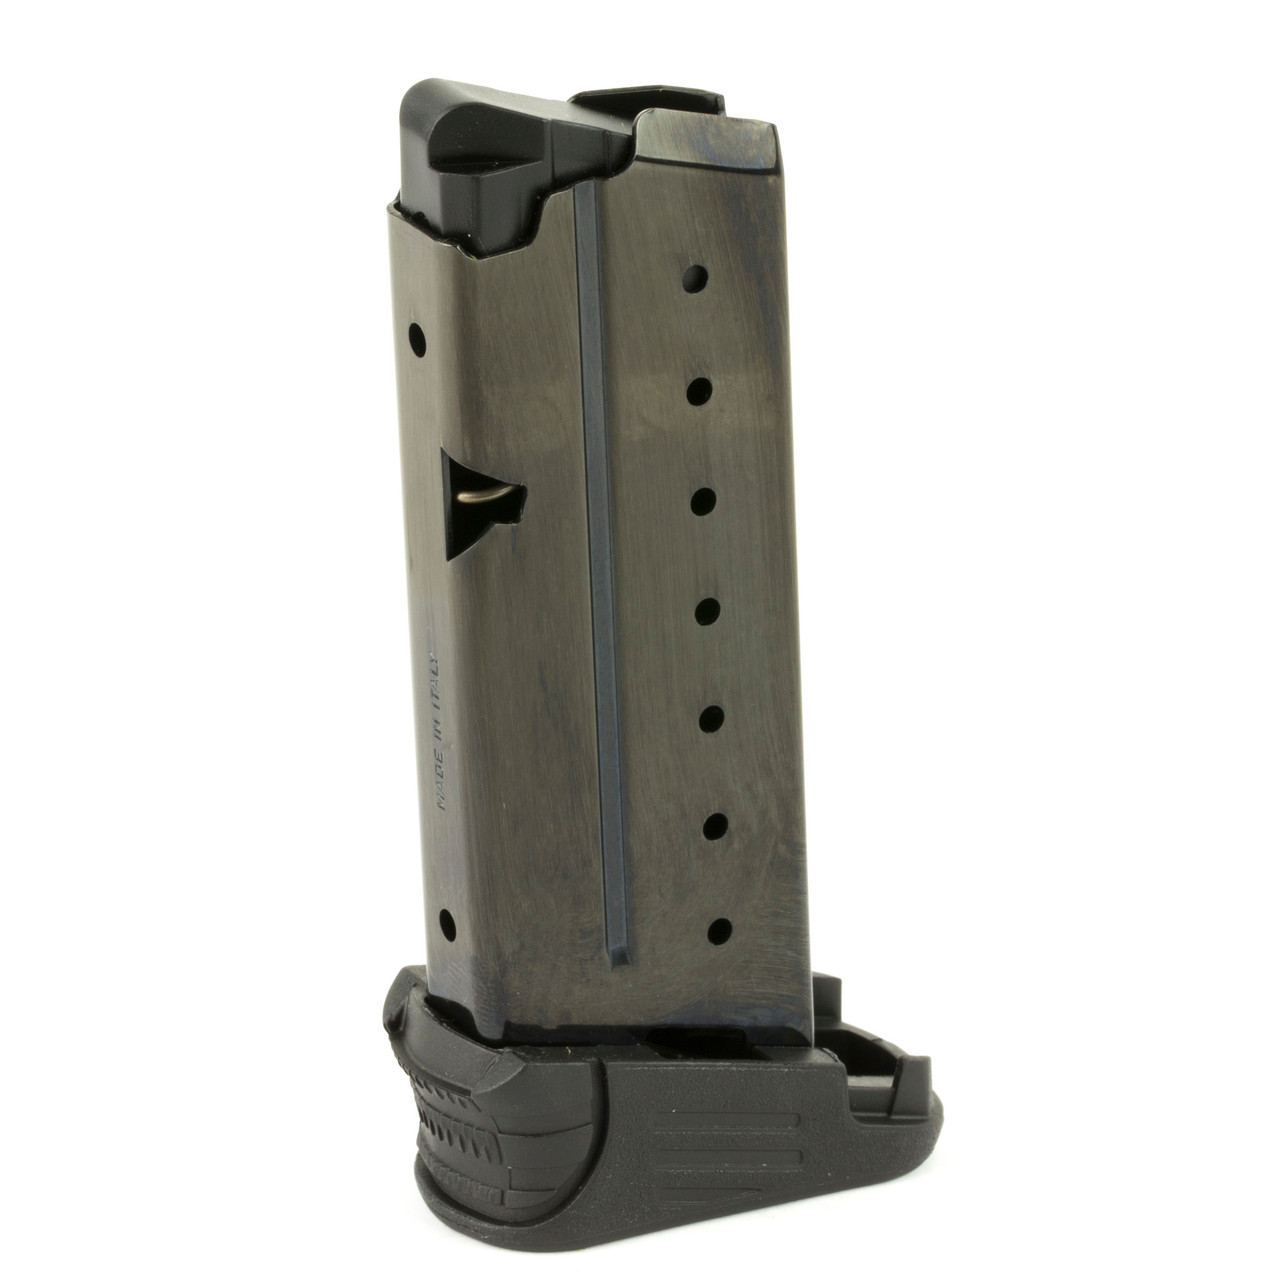 Walther 2796589 PPS 9mm 7 round Magazine 723364200656